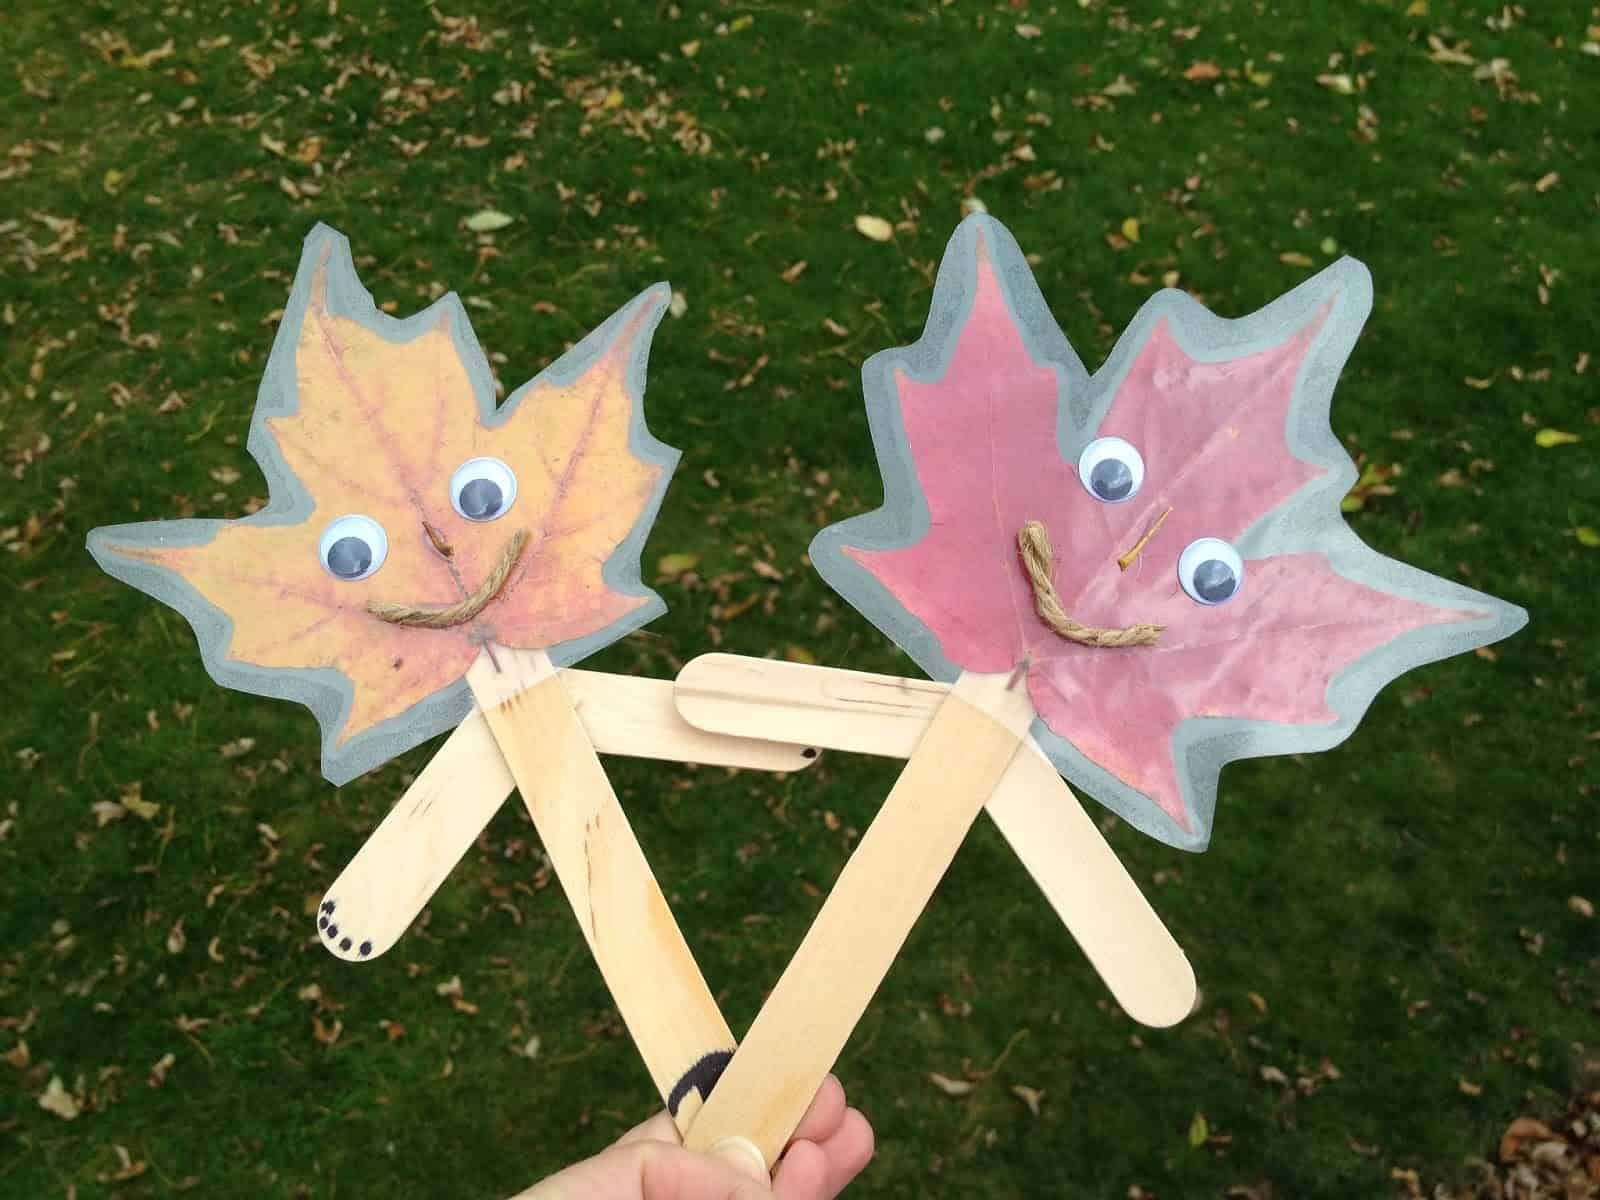 Laminated leaf popsicle stick puppets